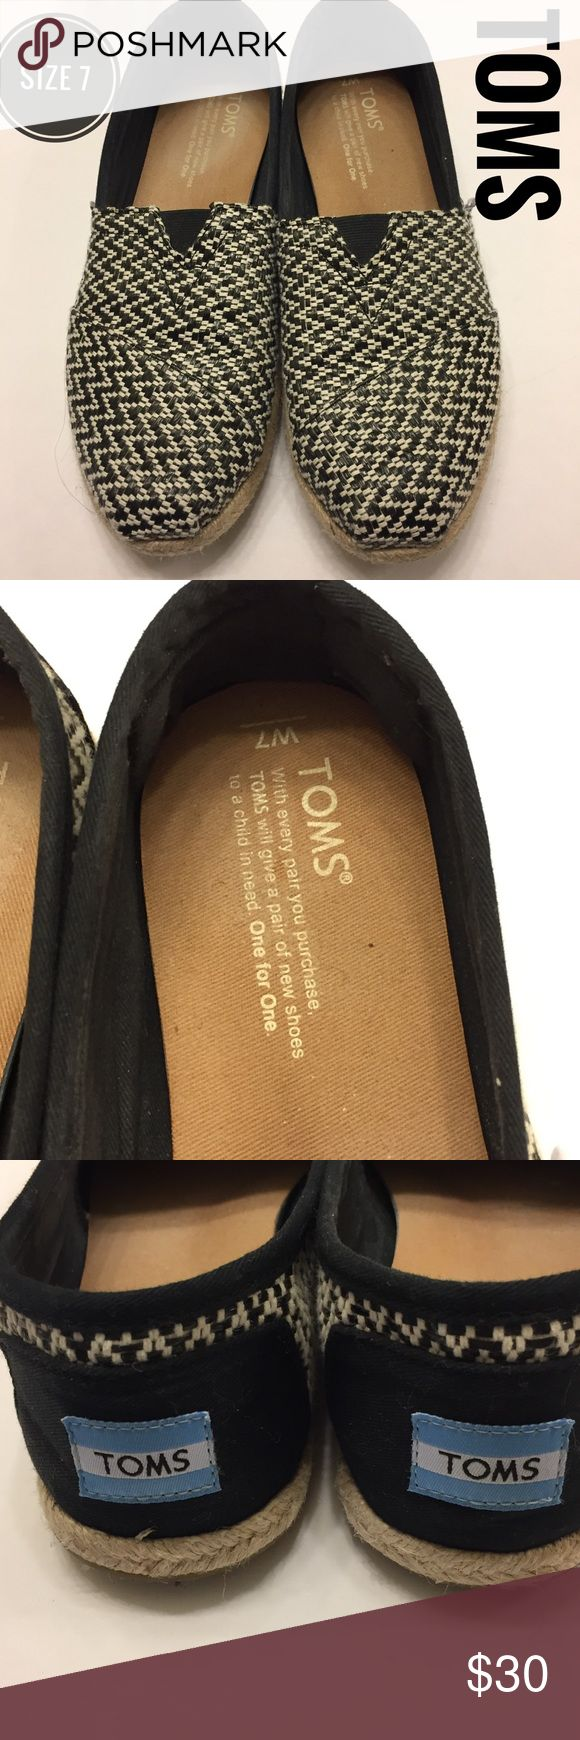 Sz 7 TOMS chevron print flats EUC Just worn a couple of times - excellent condition. Fun print but can still go with everything Toms Shoes